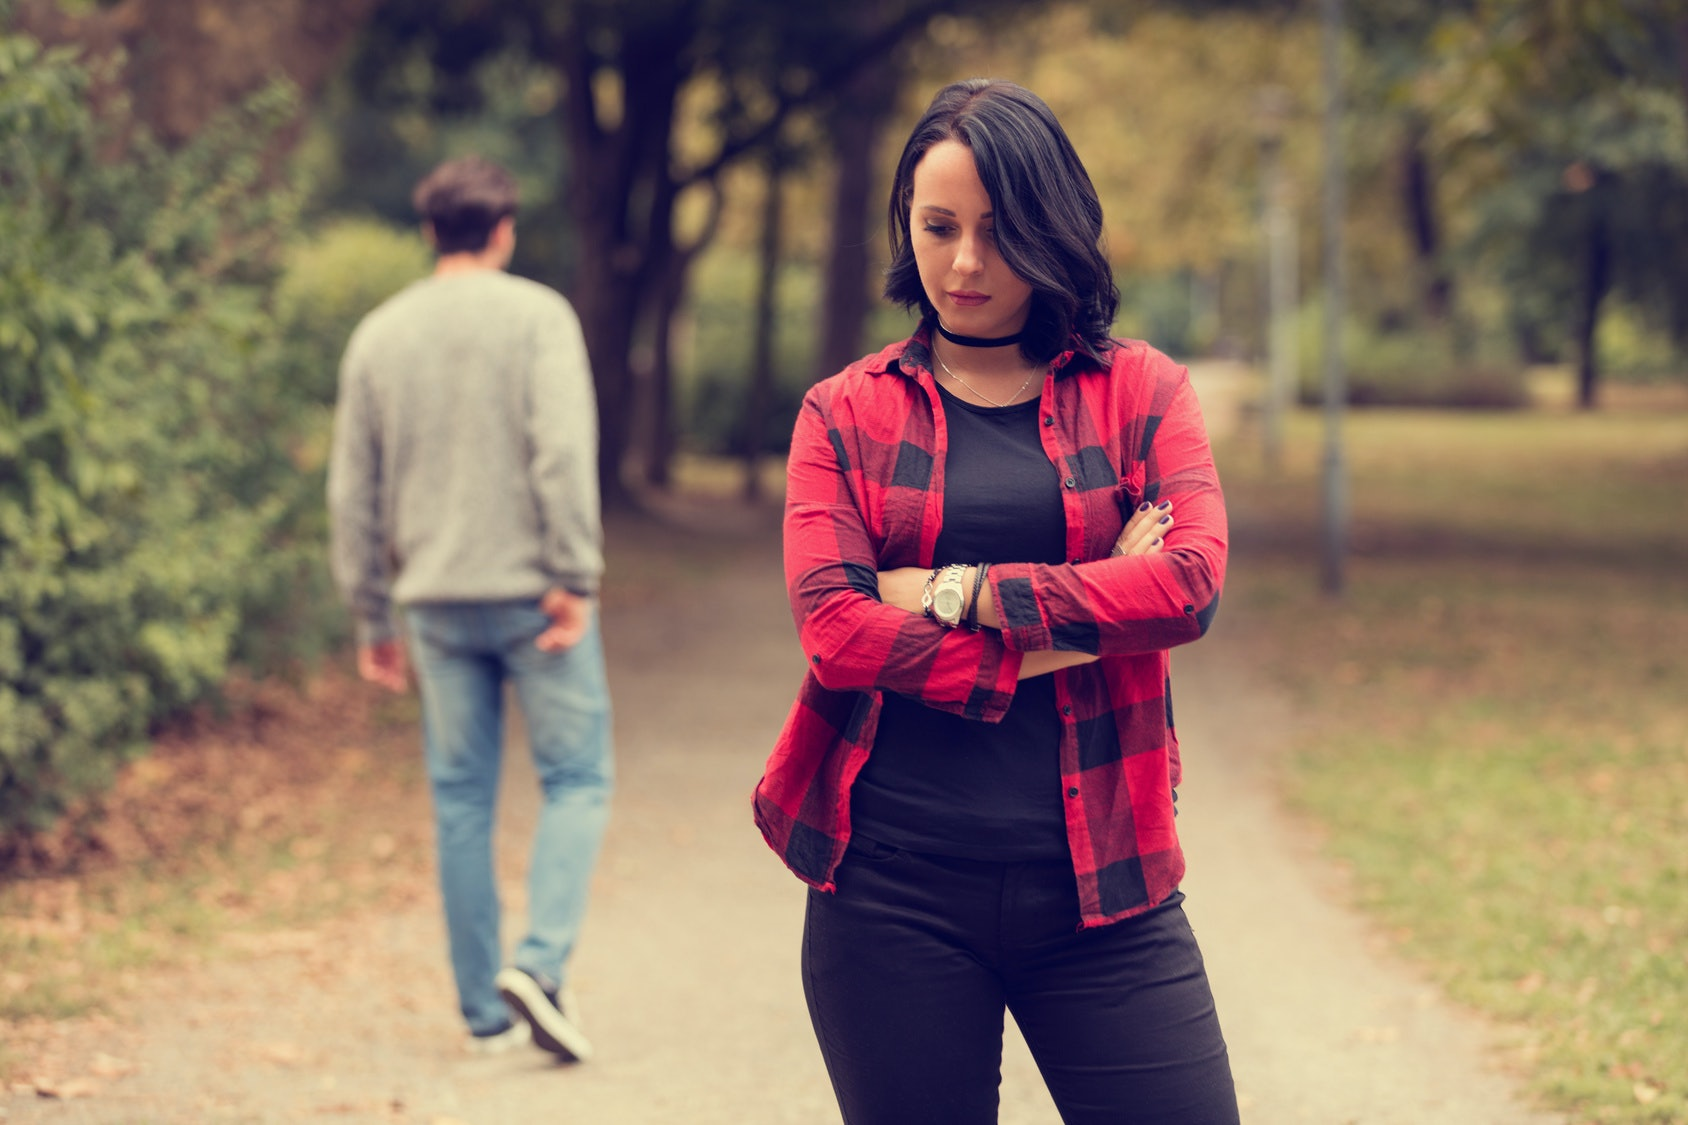 How to behave maturely with your boyfriend